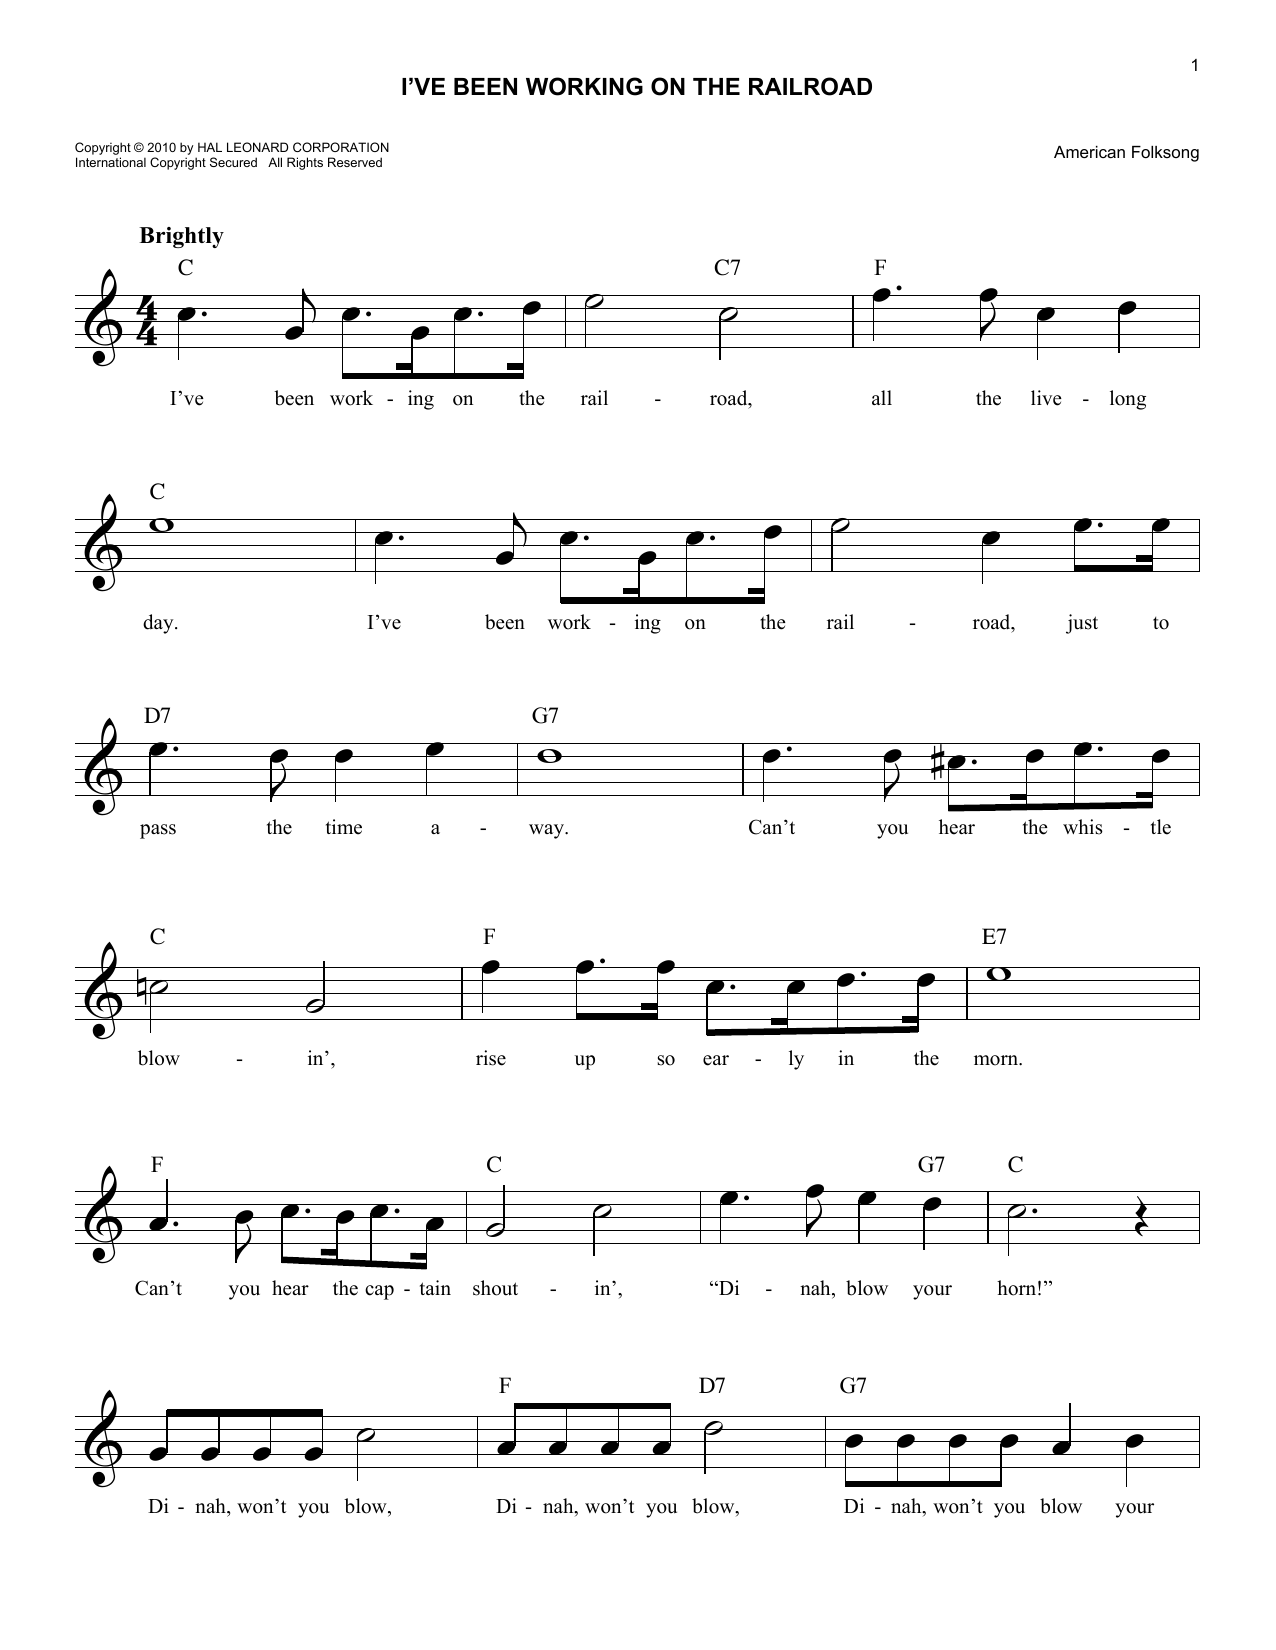 American Folksong I've Been Working On The Railroad sheet music notes and chords. Download Printable PDF.